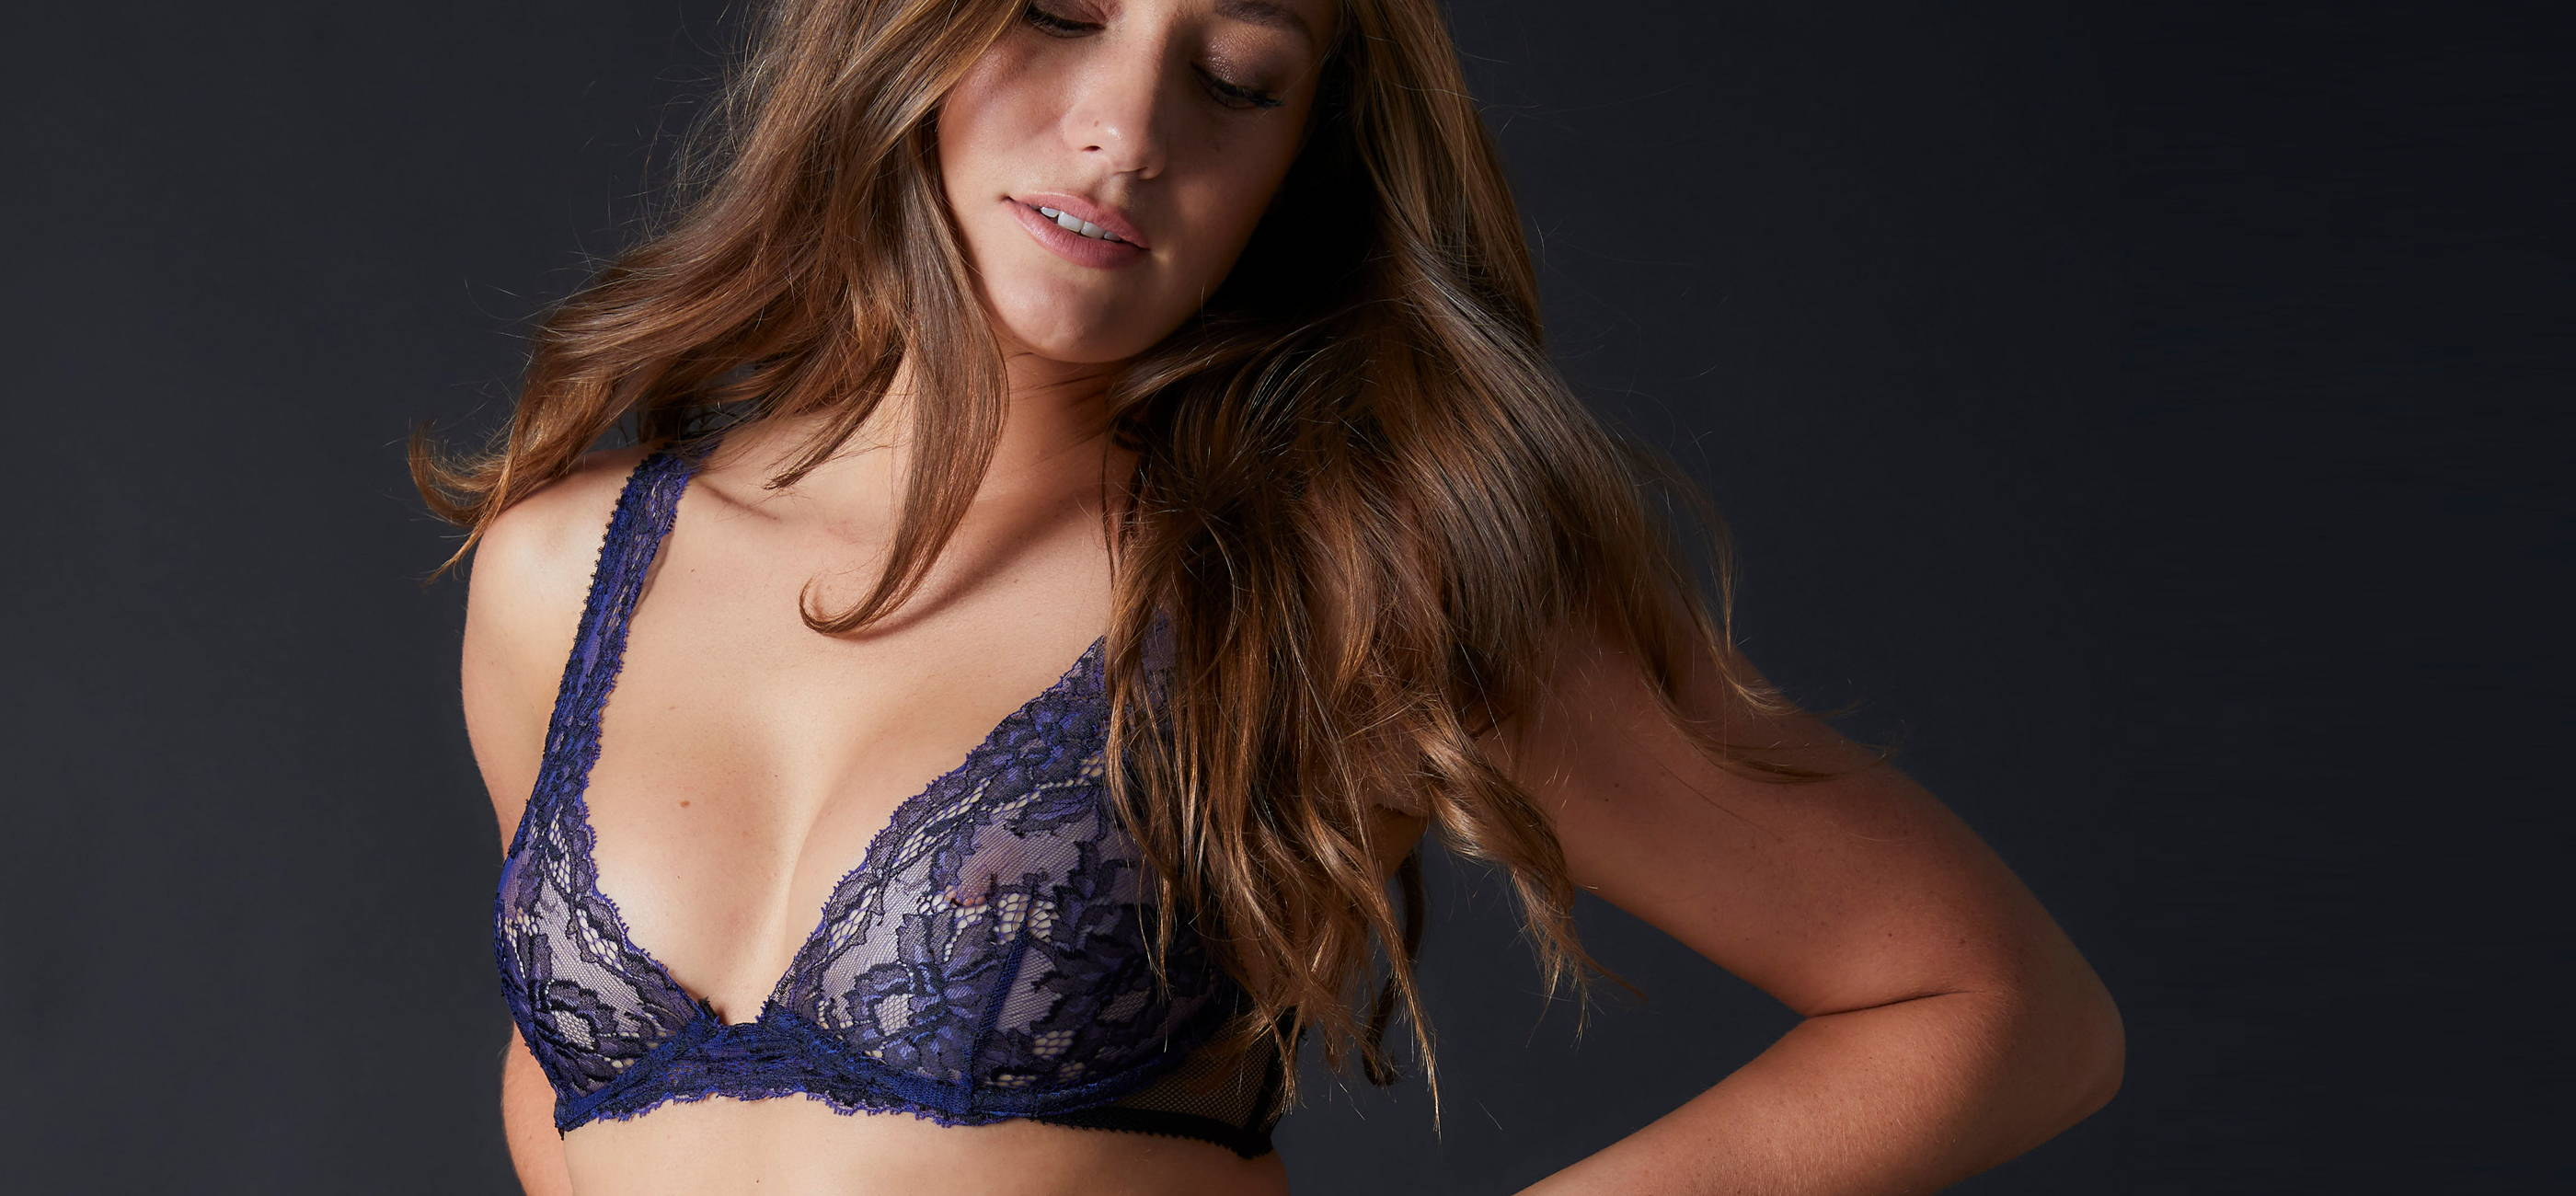 Woman wearing the lacey blue Journelle Chloe bra that is on sale for 30% off